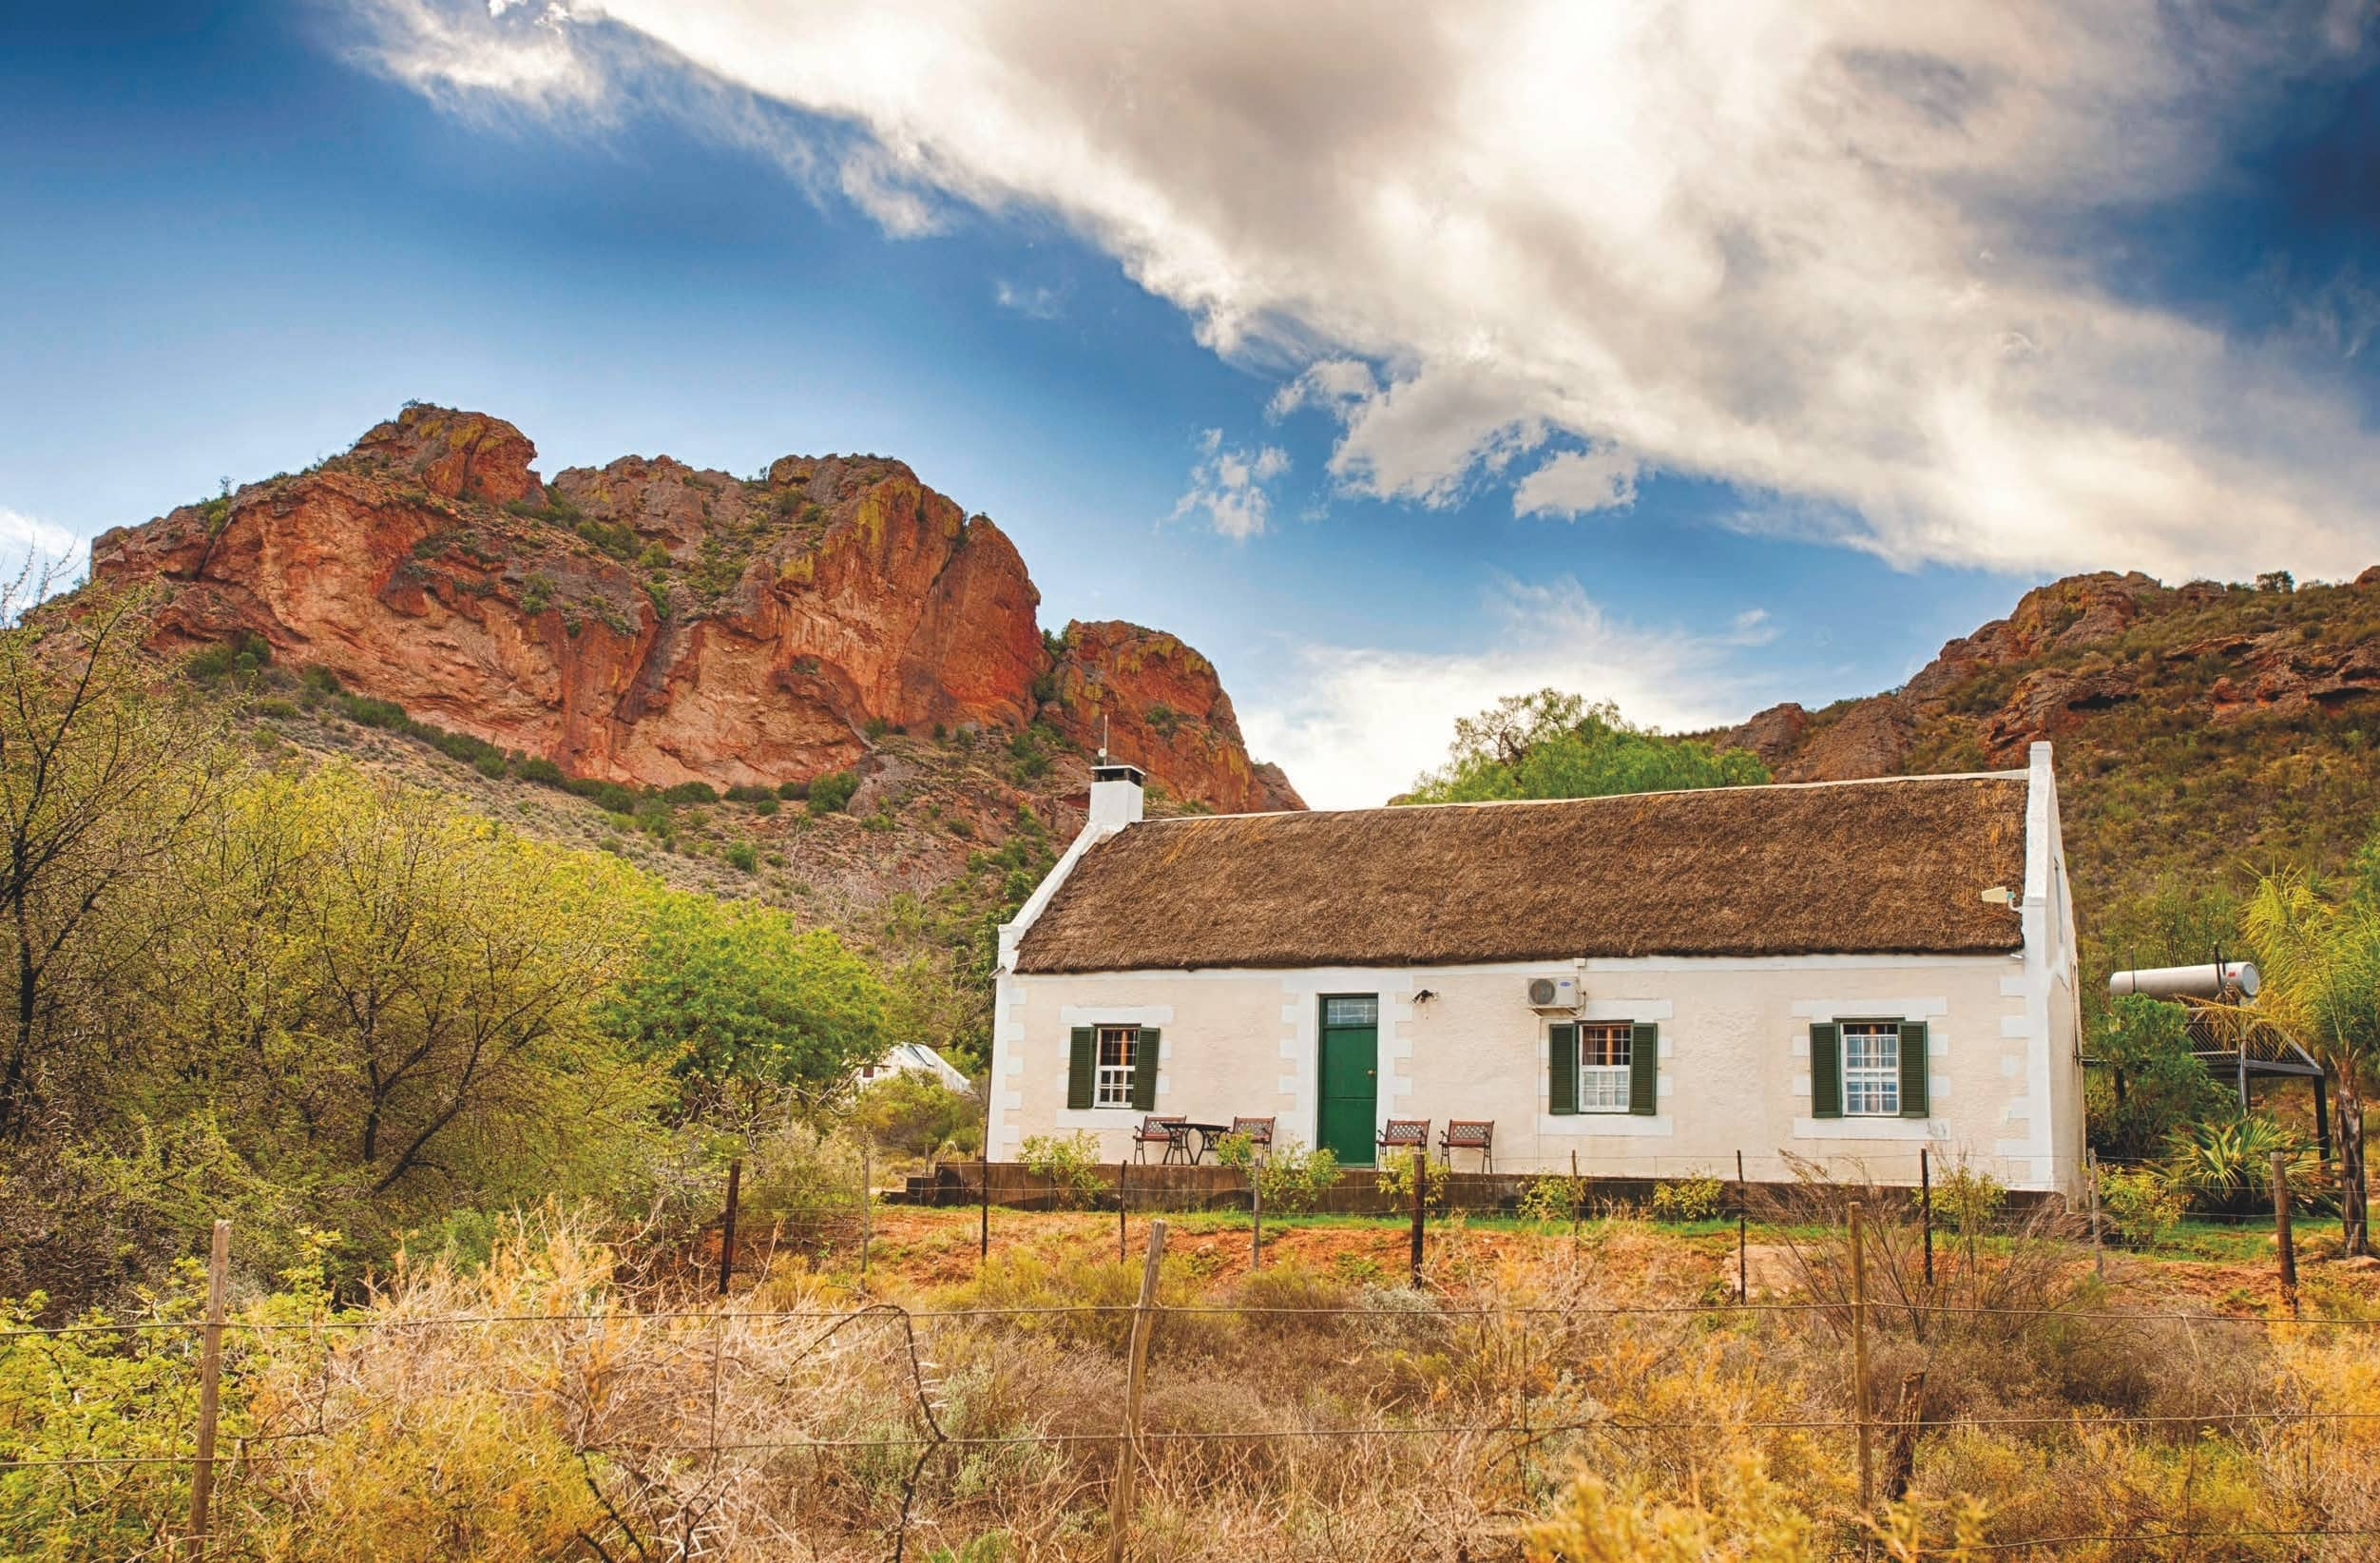 Resorts Of The Month: Kruisrivier Guest Farm